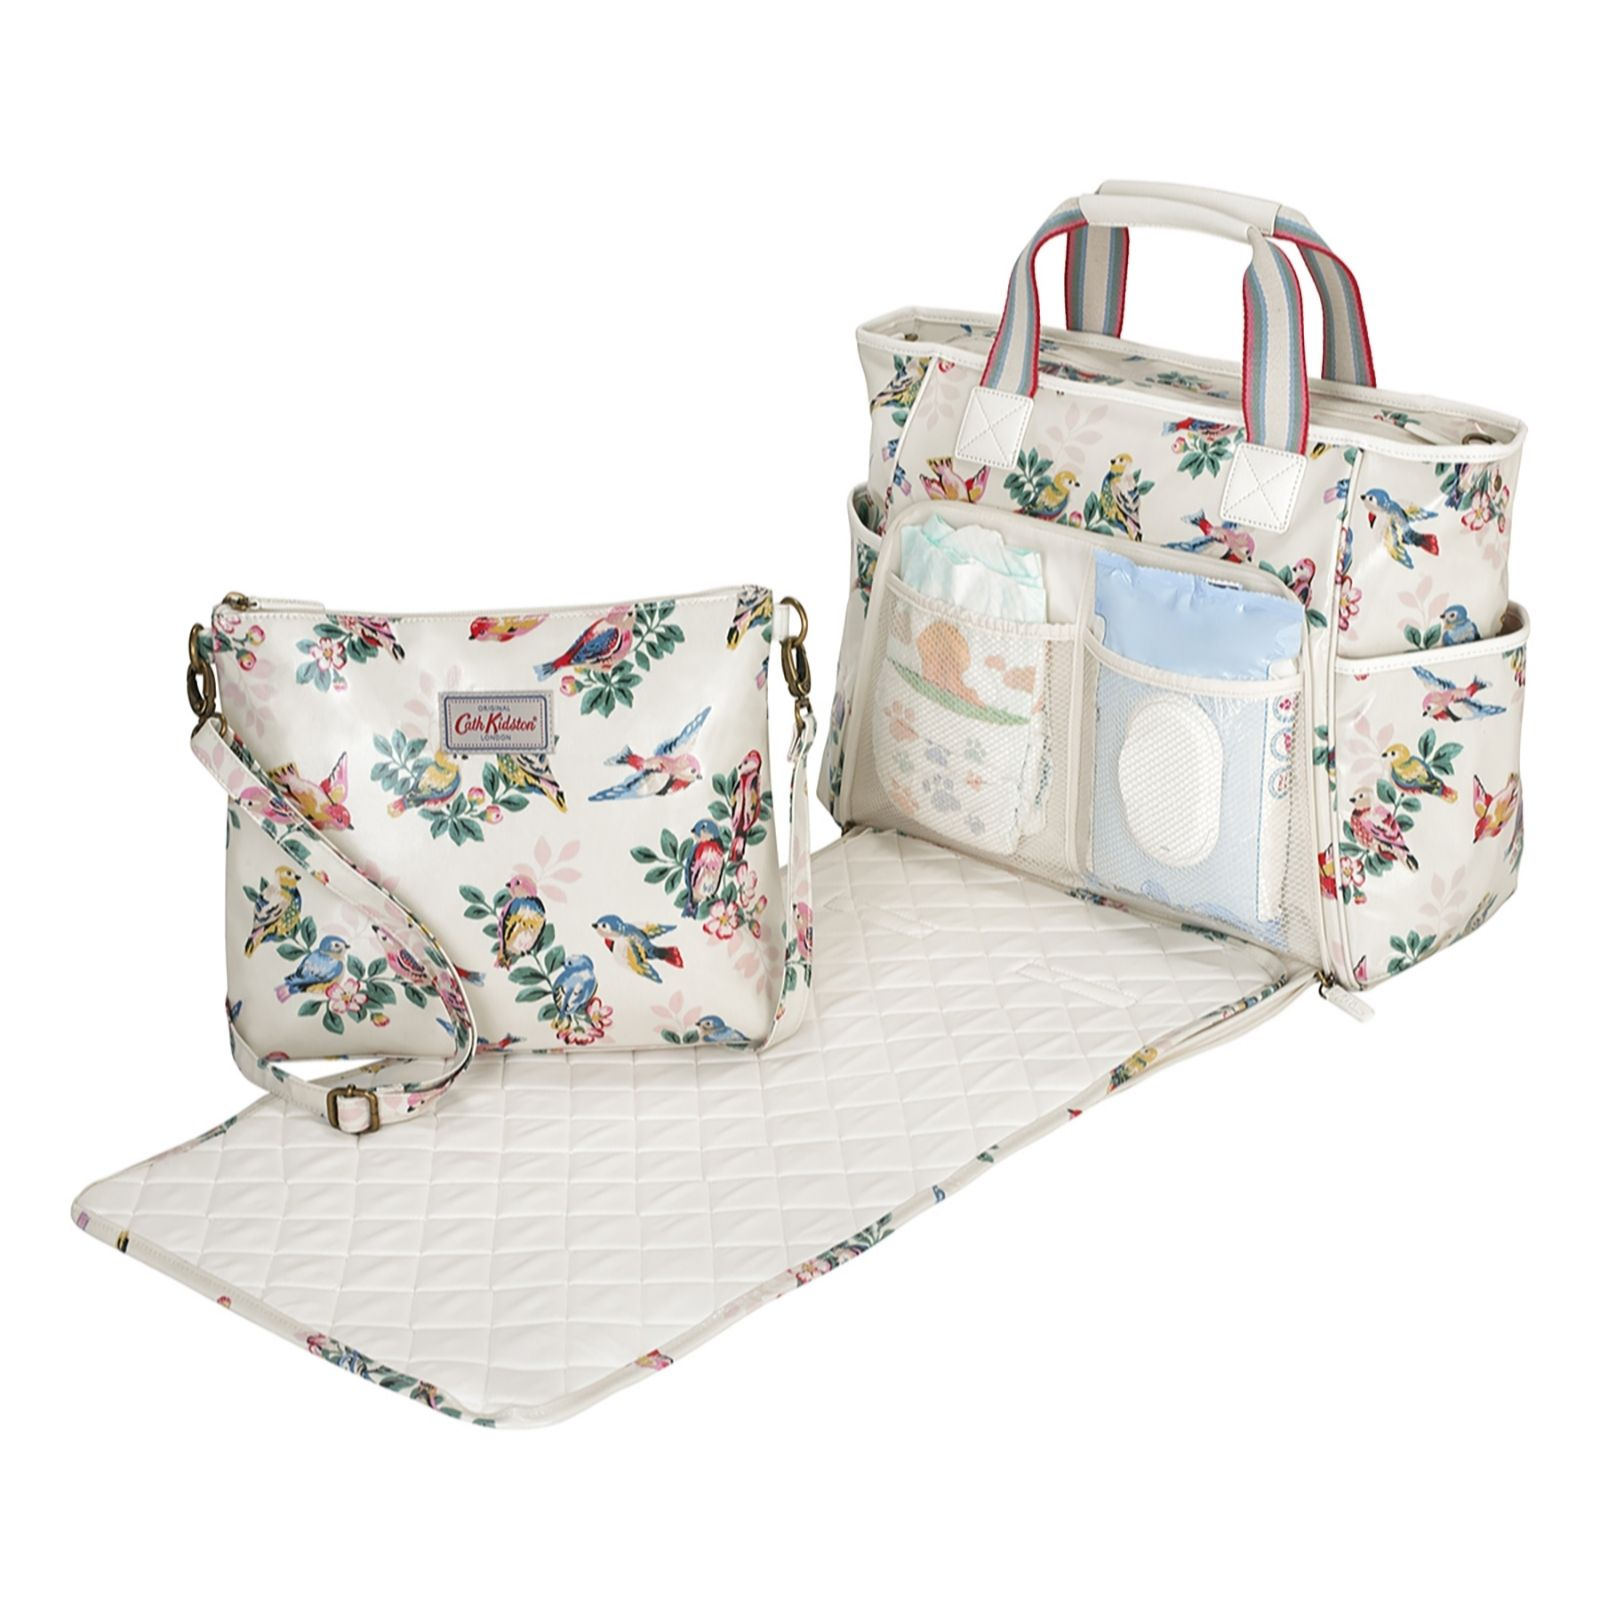 aea080dd1844a Cath Kidston Carry All Nappy Bag - QVC UK